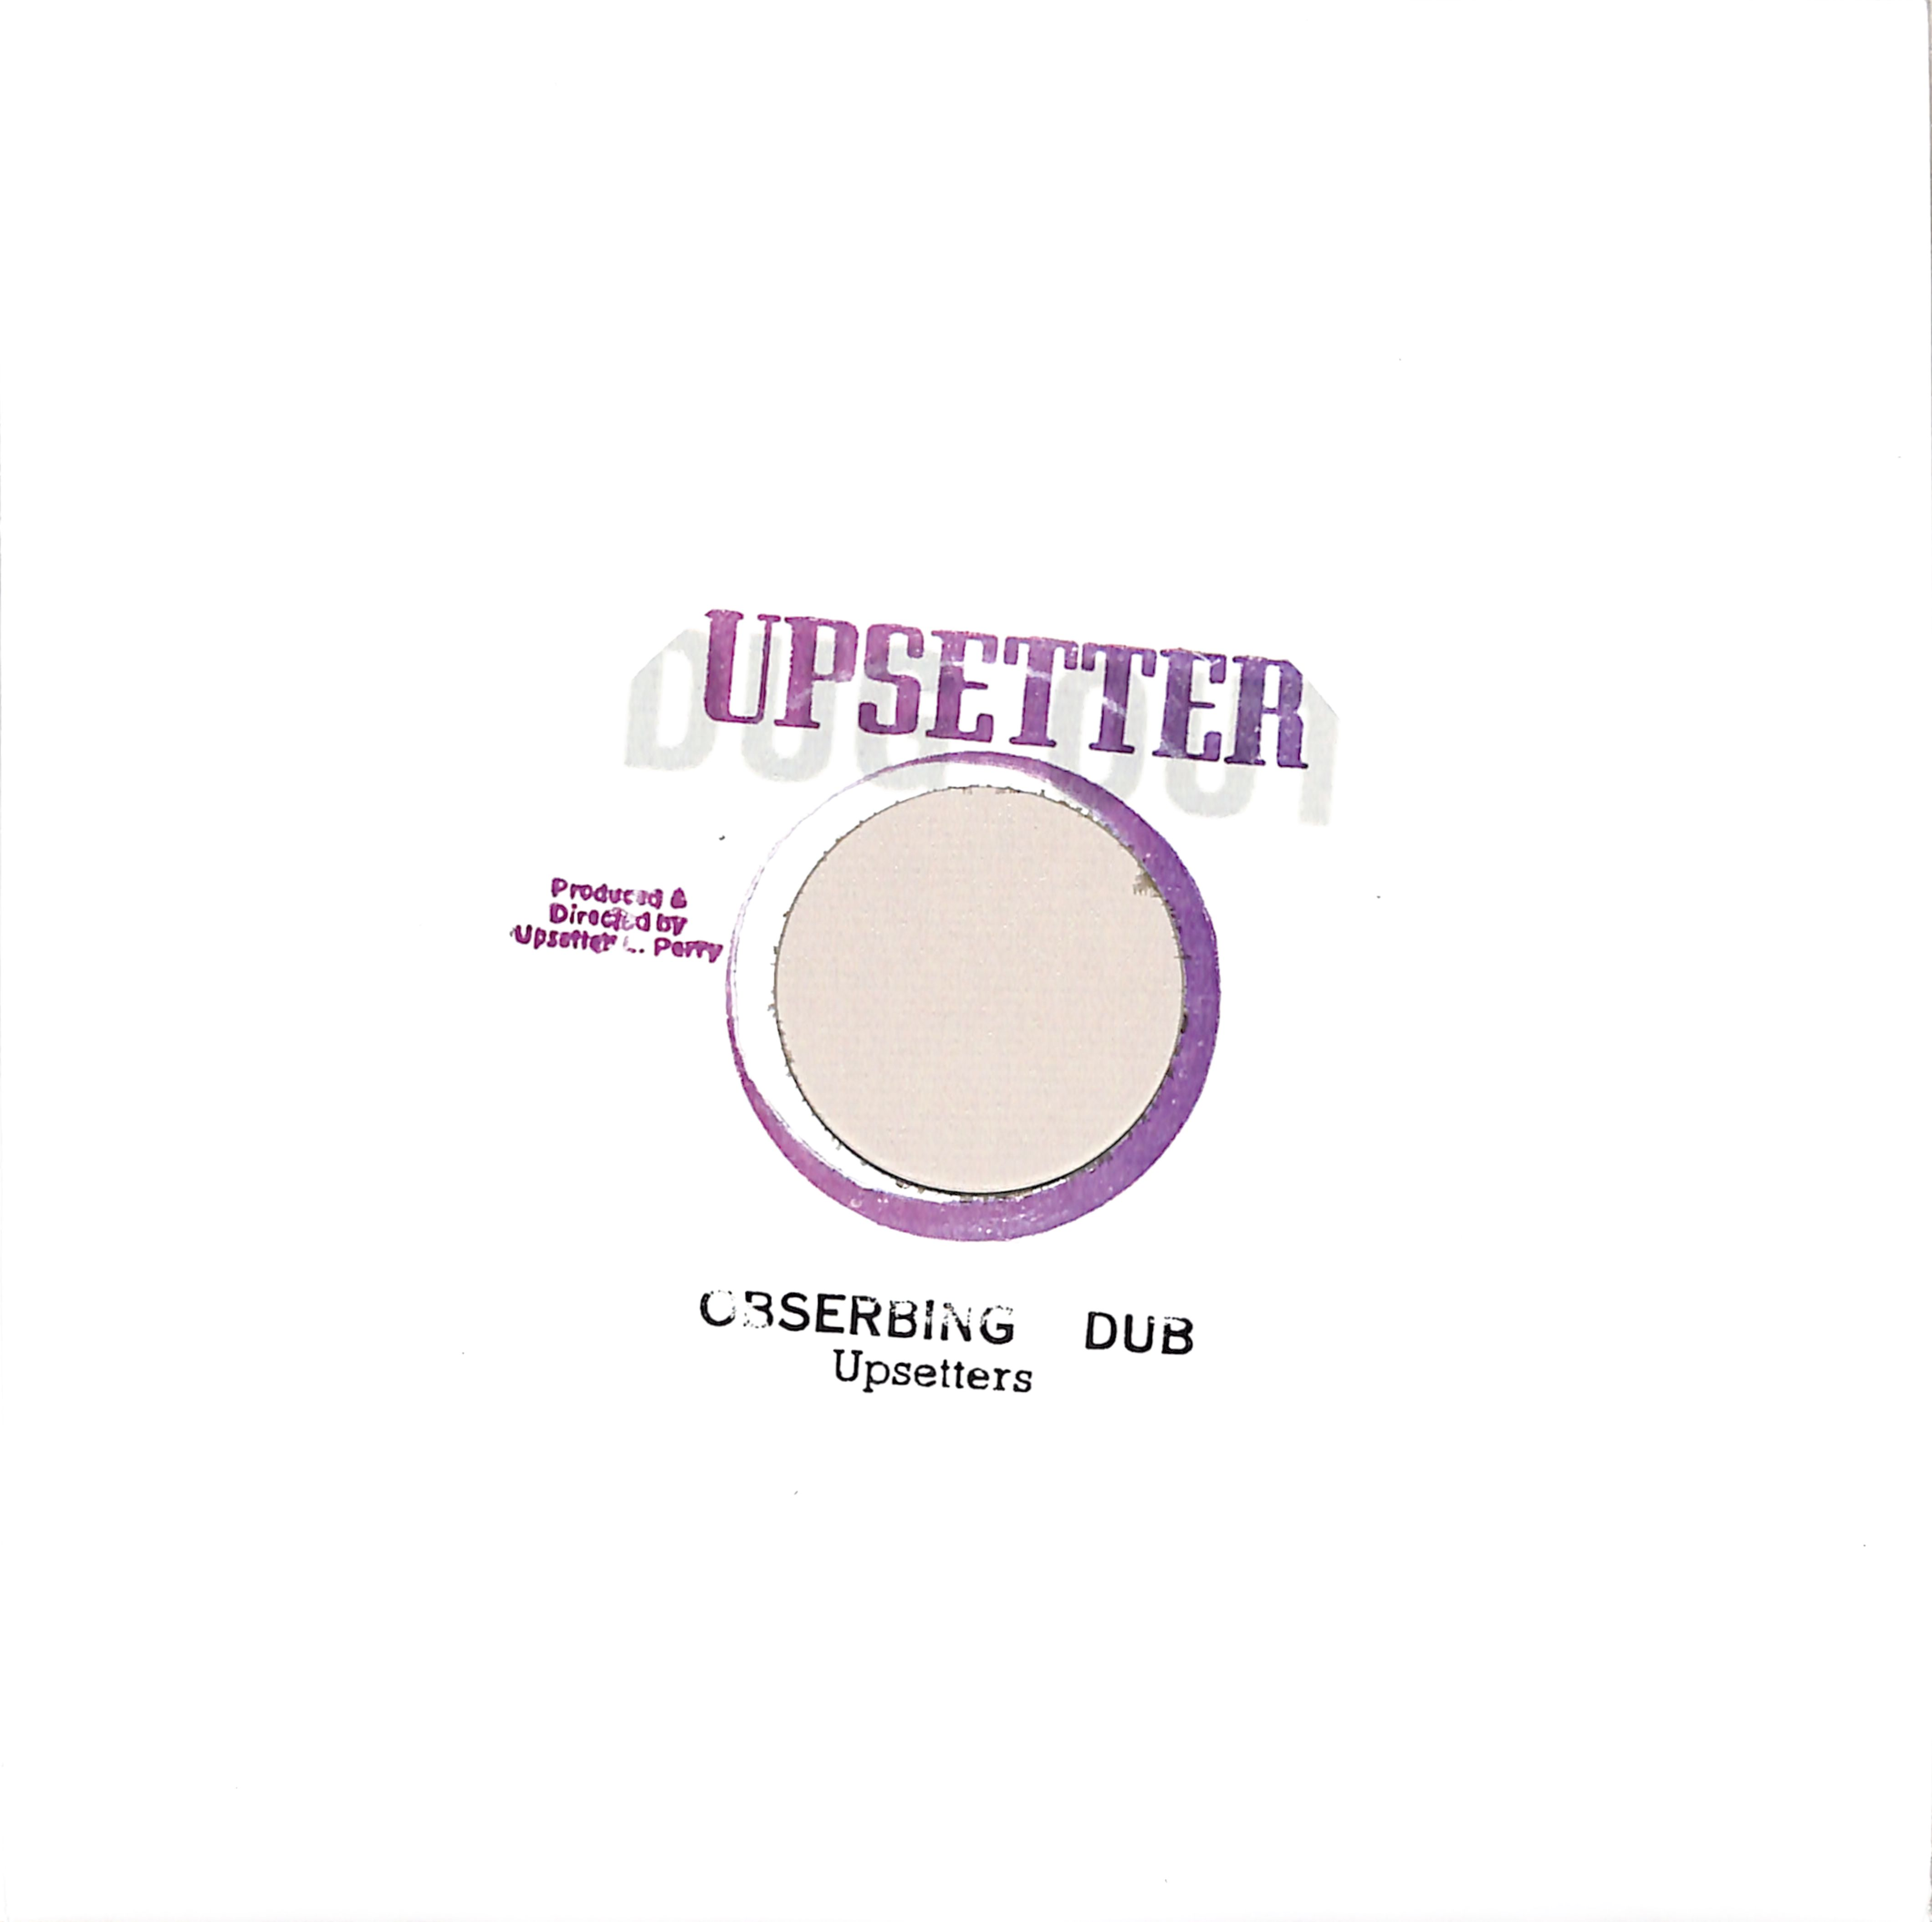 Michael Rose - OBSERB LIFE